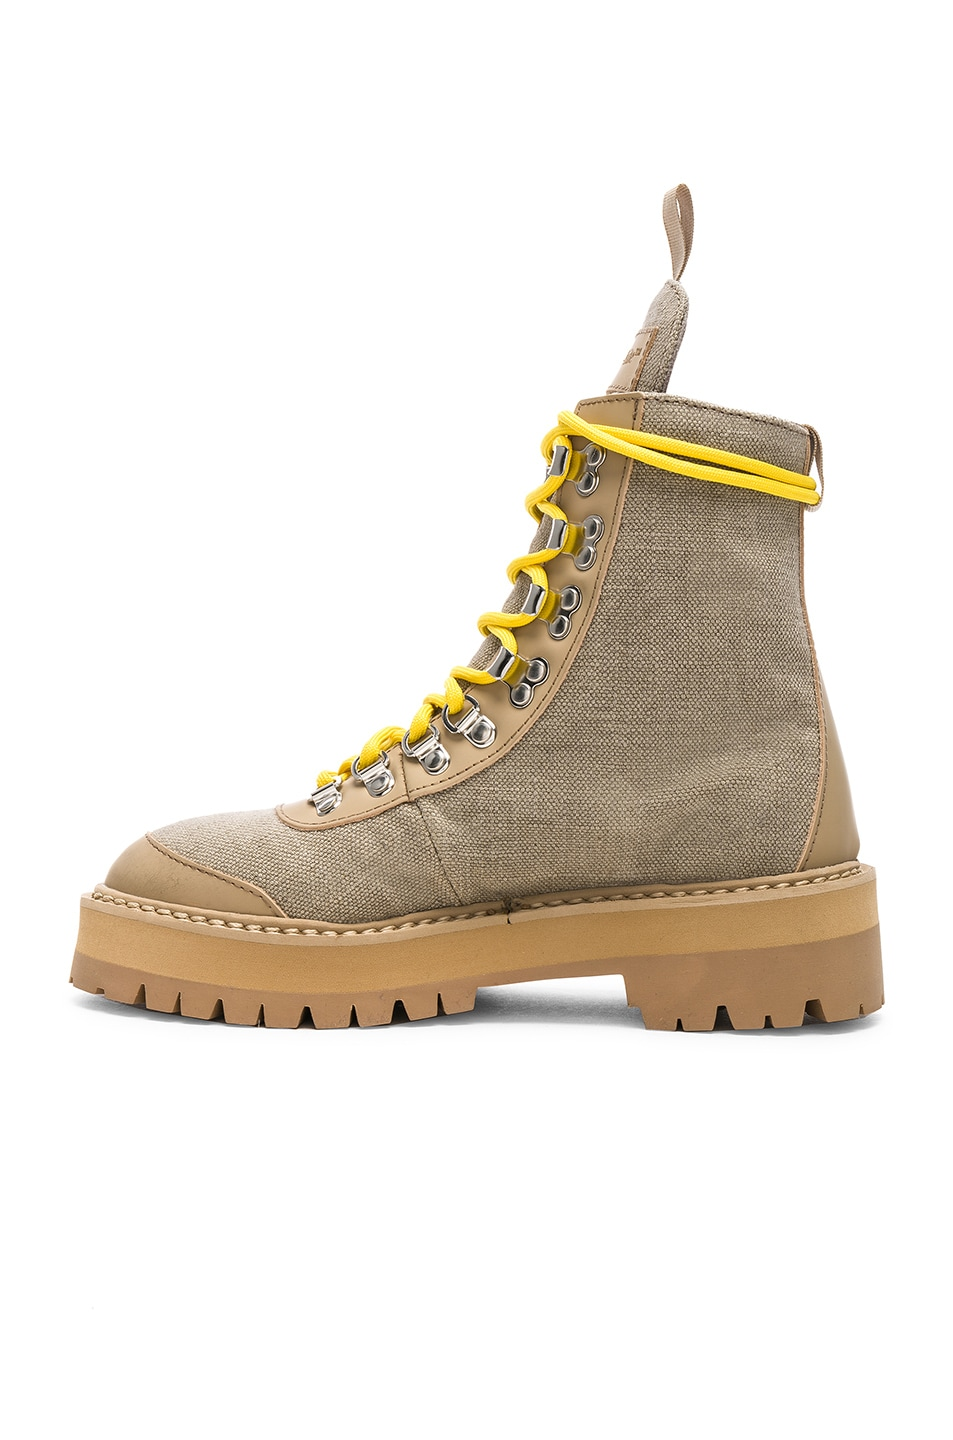 402ccde42e1 OFF-WHITE Canvas Hiking Boots in Sand | FWRD